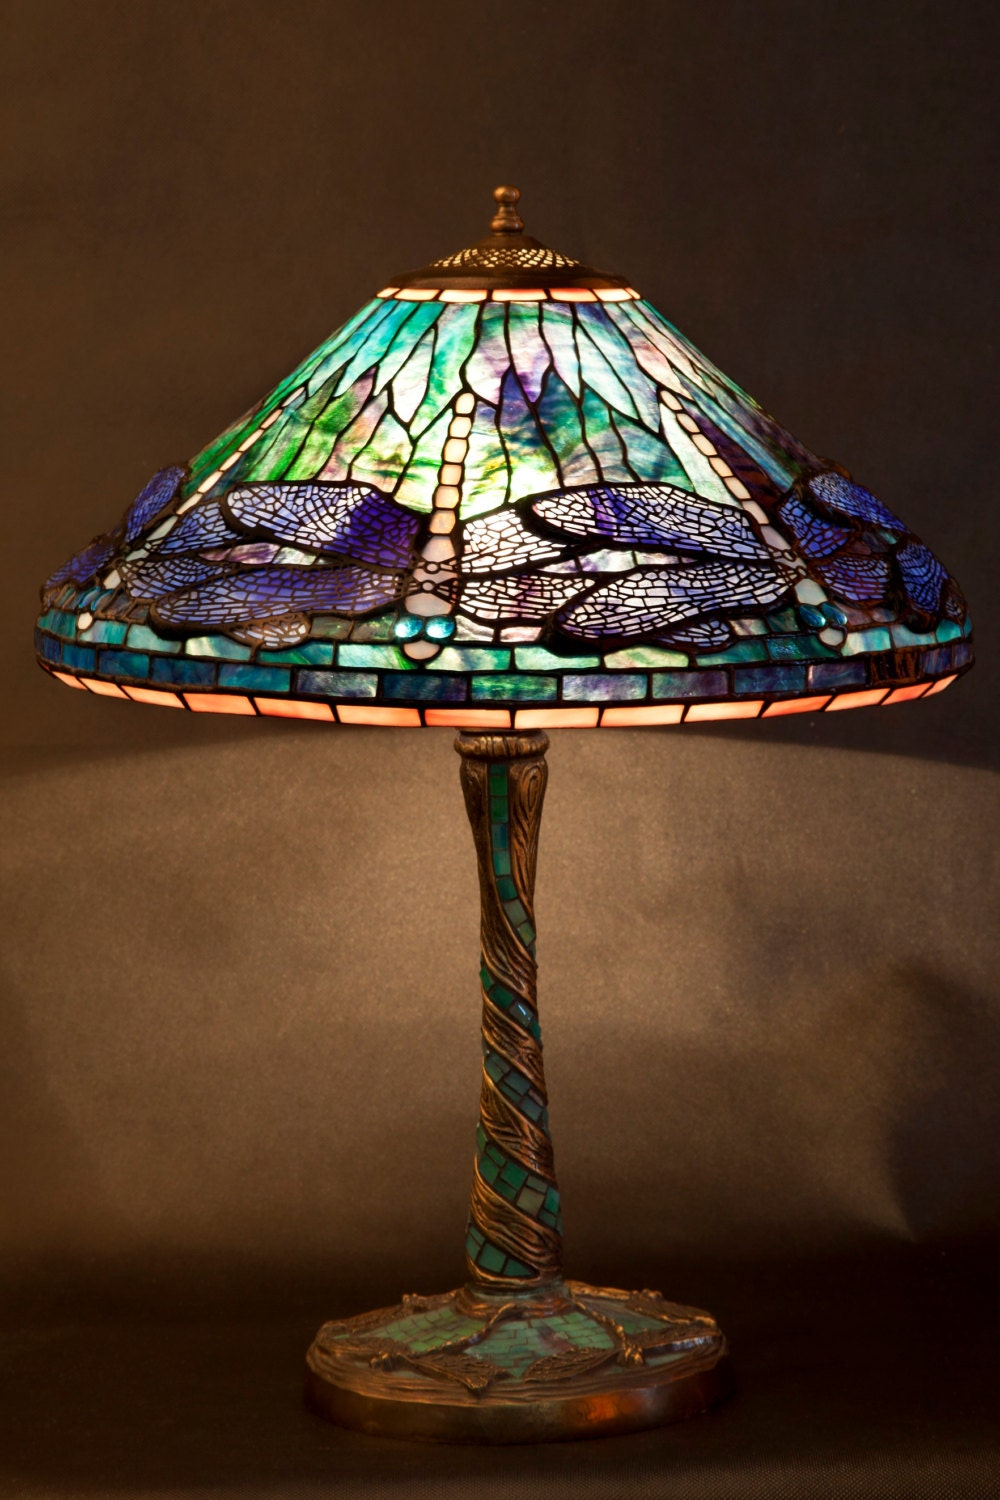 Dragonfly lamp stained glass tiffany lamp desk lamp for 1908 studios tiffany blue dragonfly floor lamp